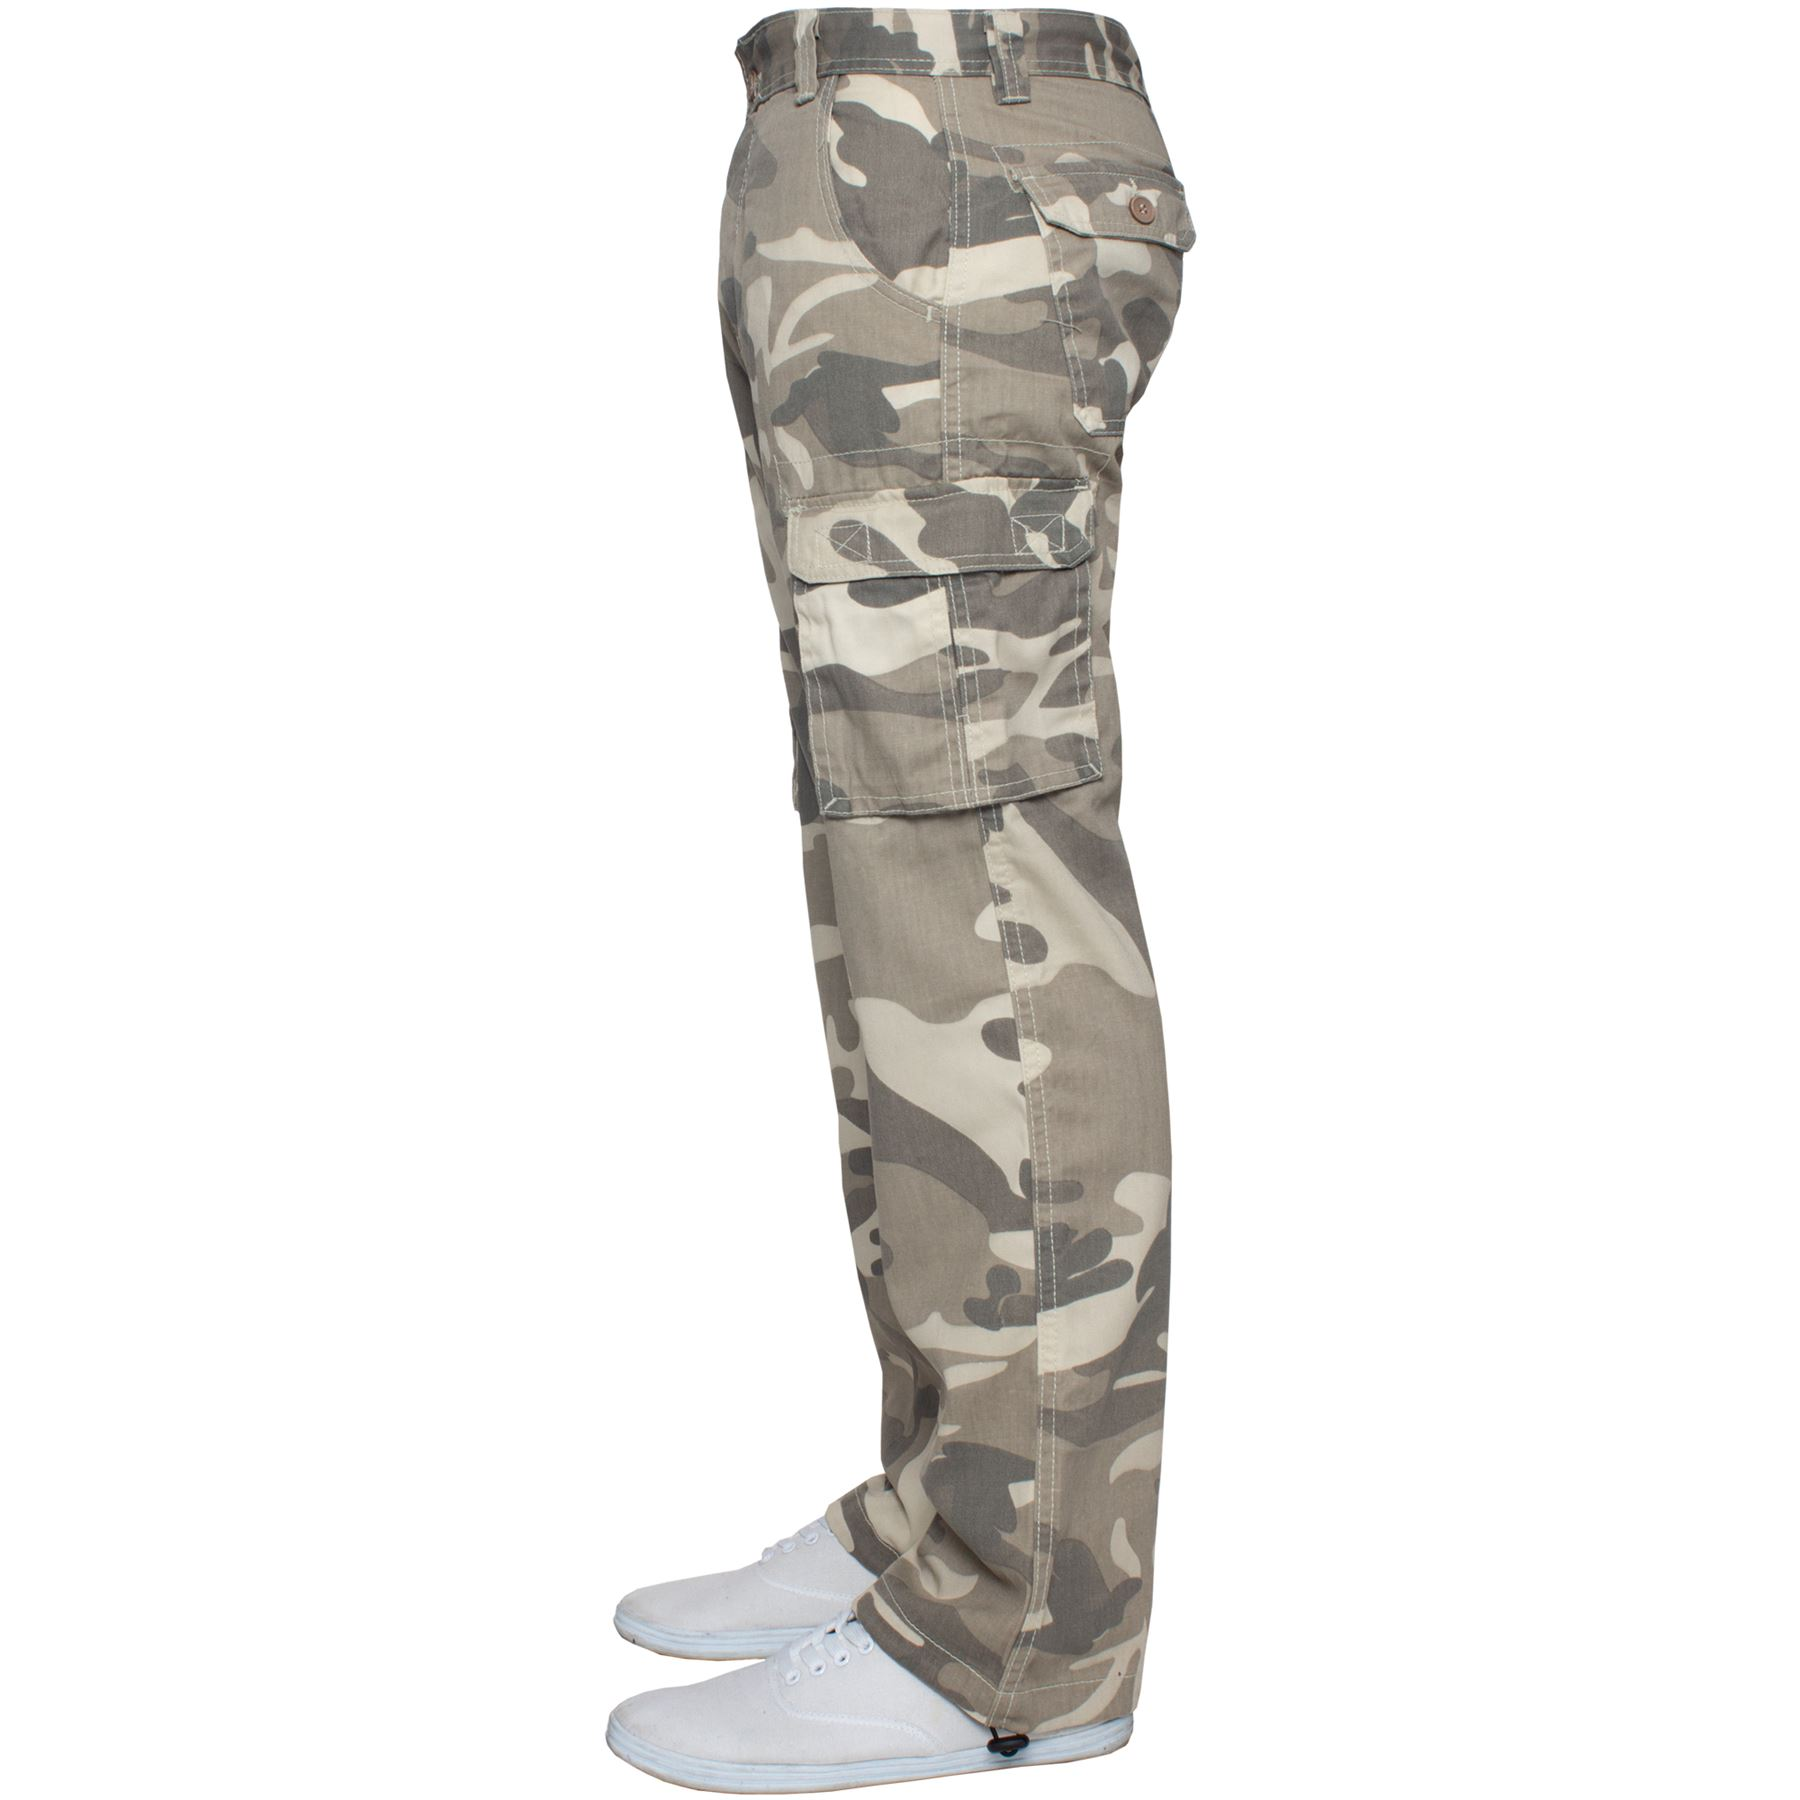 Kruze-Mens-Military-Combat-Trousers-Camouflage-Cargo-Camo-Army-Casual-Work-Pants miniatura 5